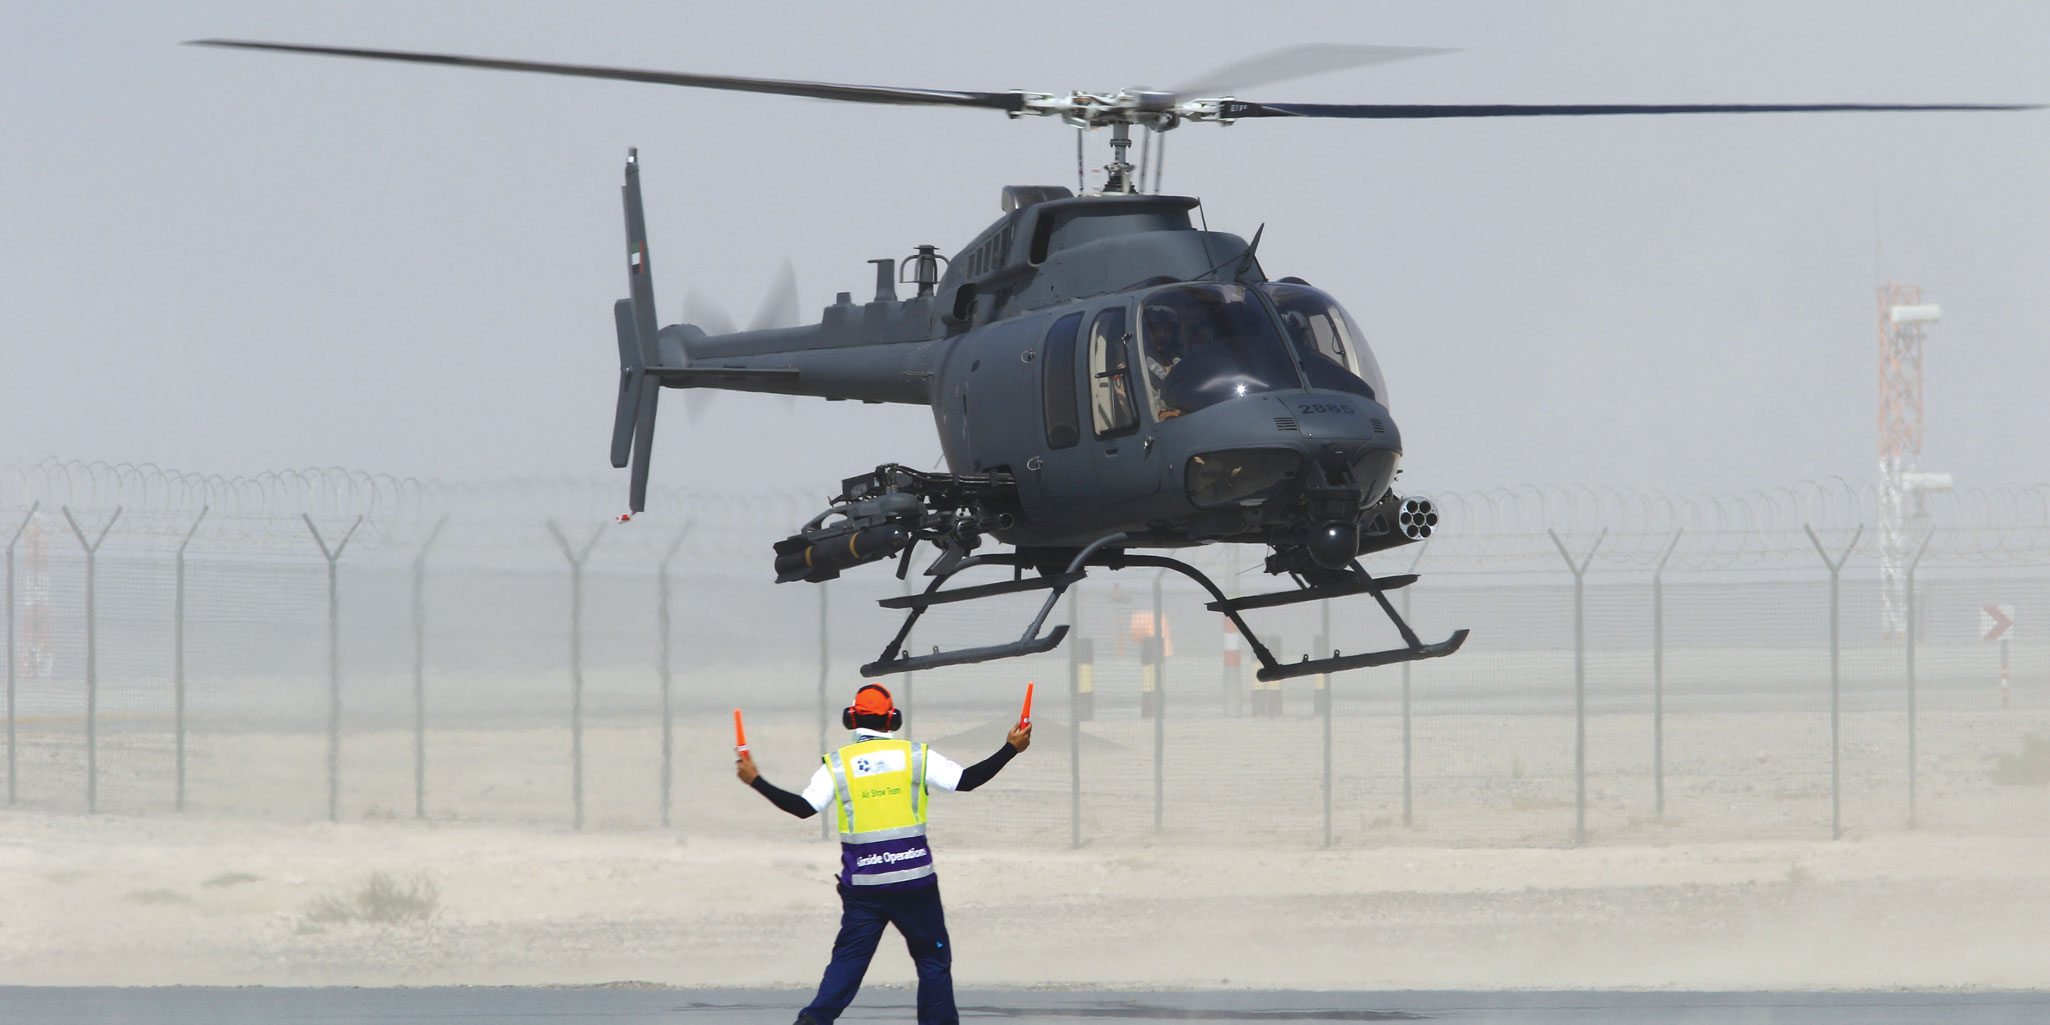 bell 407 helicopter for sale with Bell Helicopter Receives Orders Two Vip Super Medium Twins on B407gxp panama additionally Bell 222 230 together with Bell 407 together with Astar 350 B2 also Cn.